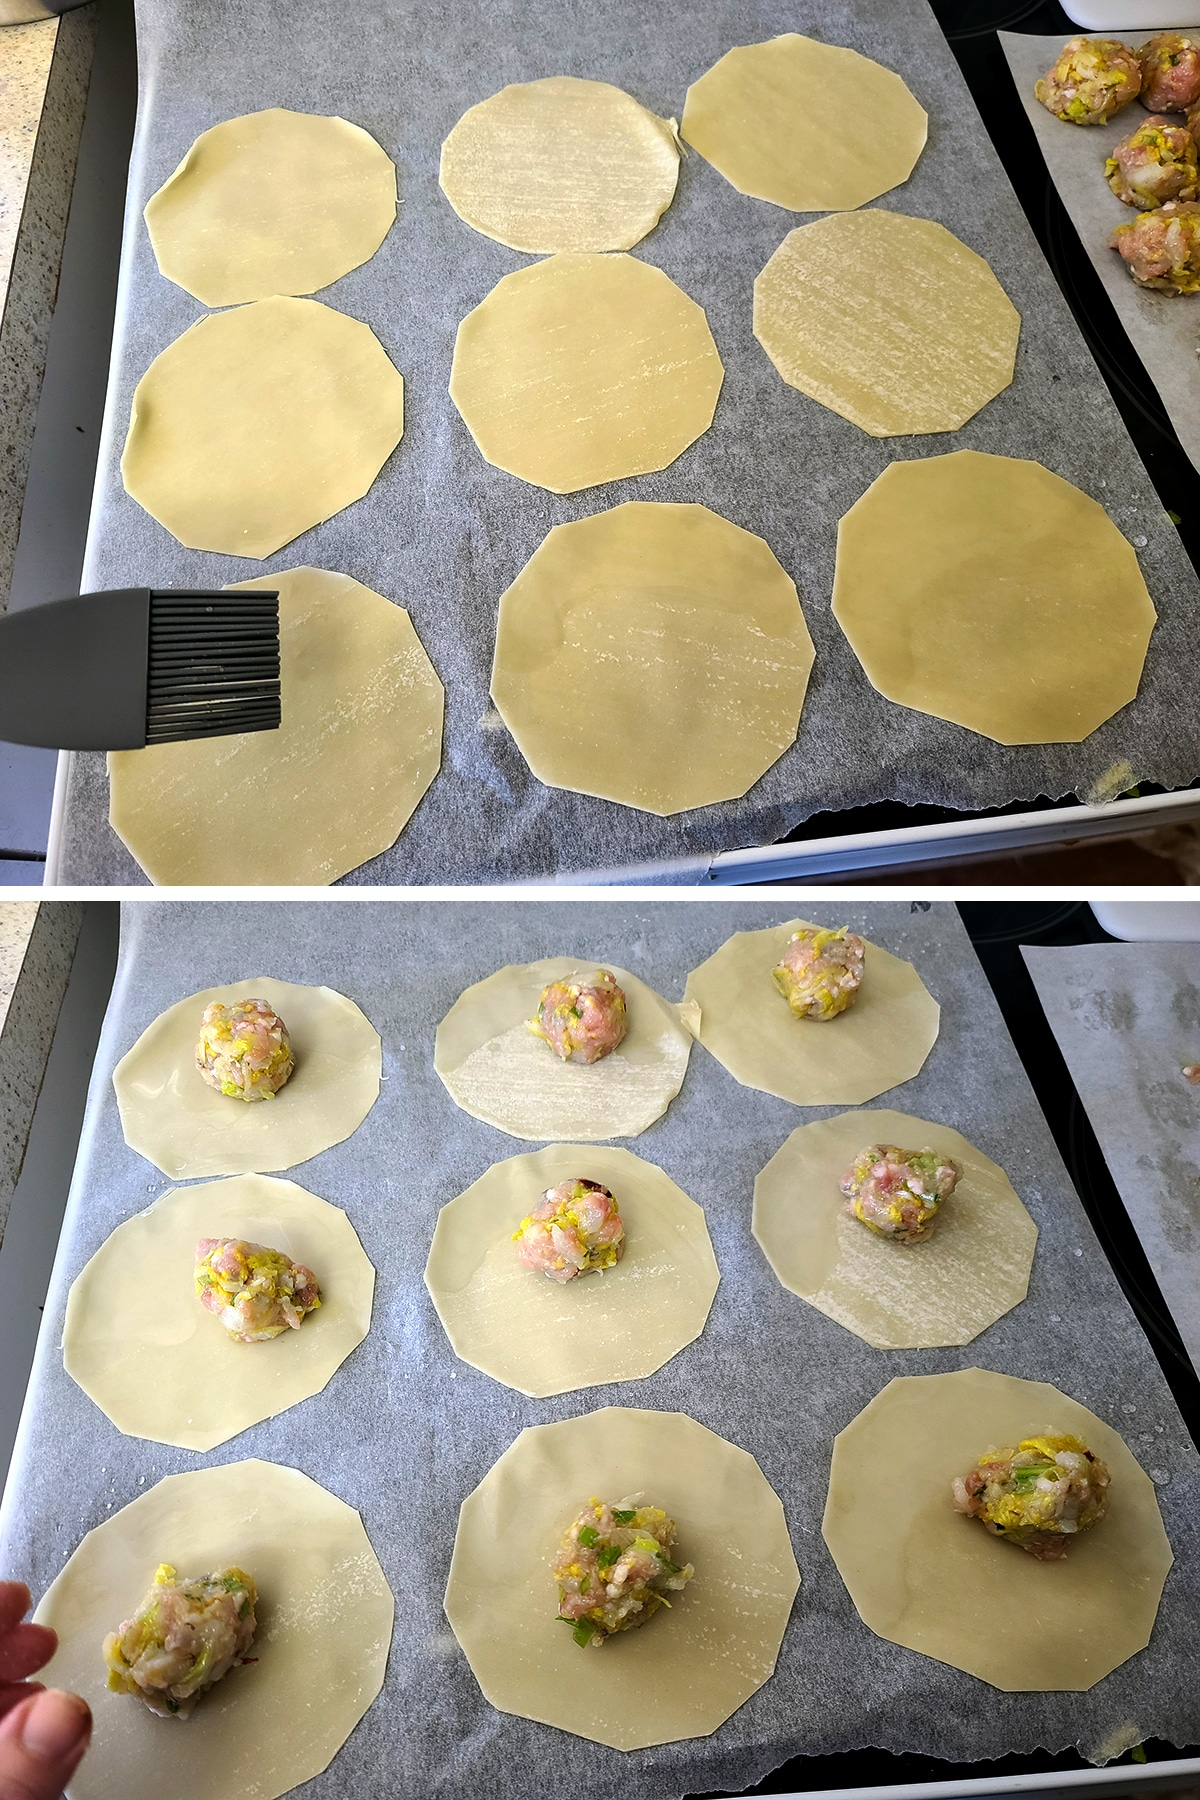 Water is brushed on round gyoza wrappers, and a ball of filling is placed in the center of each wrapper.